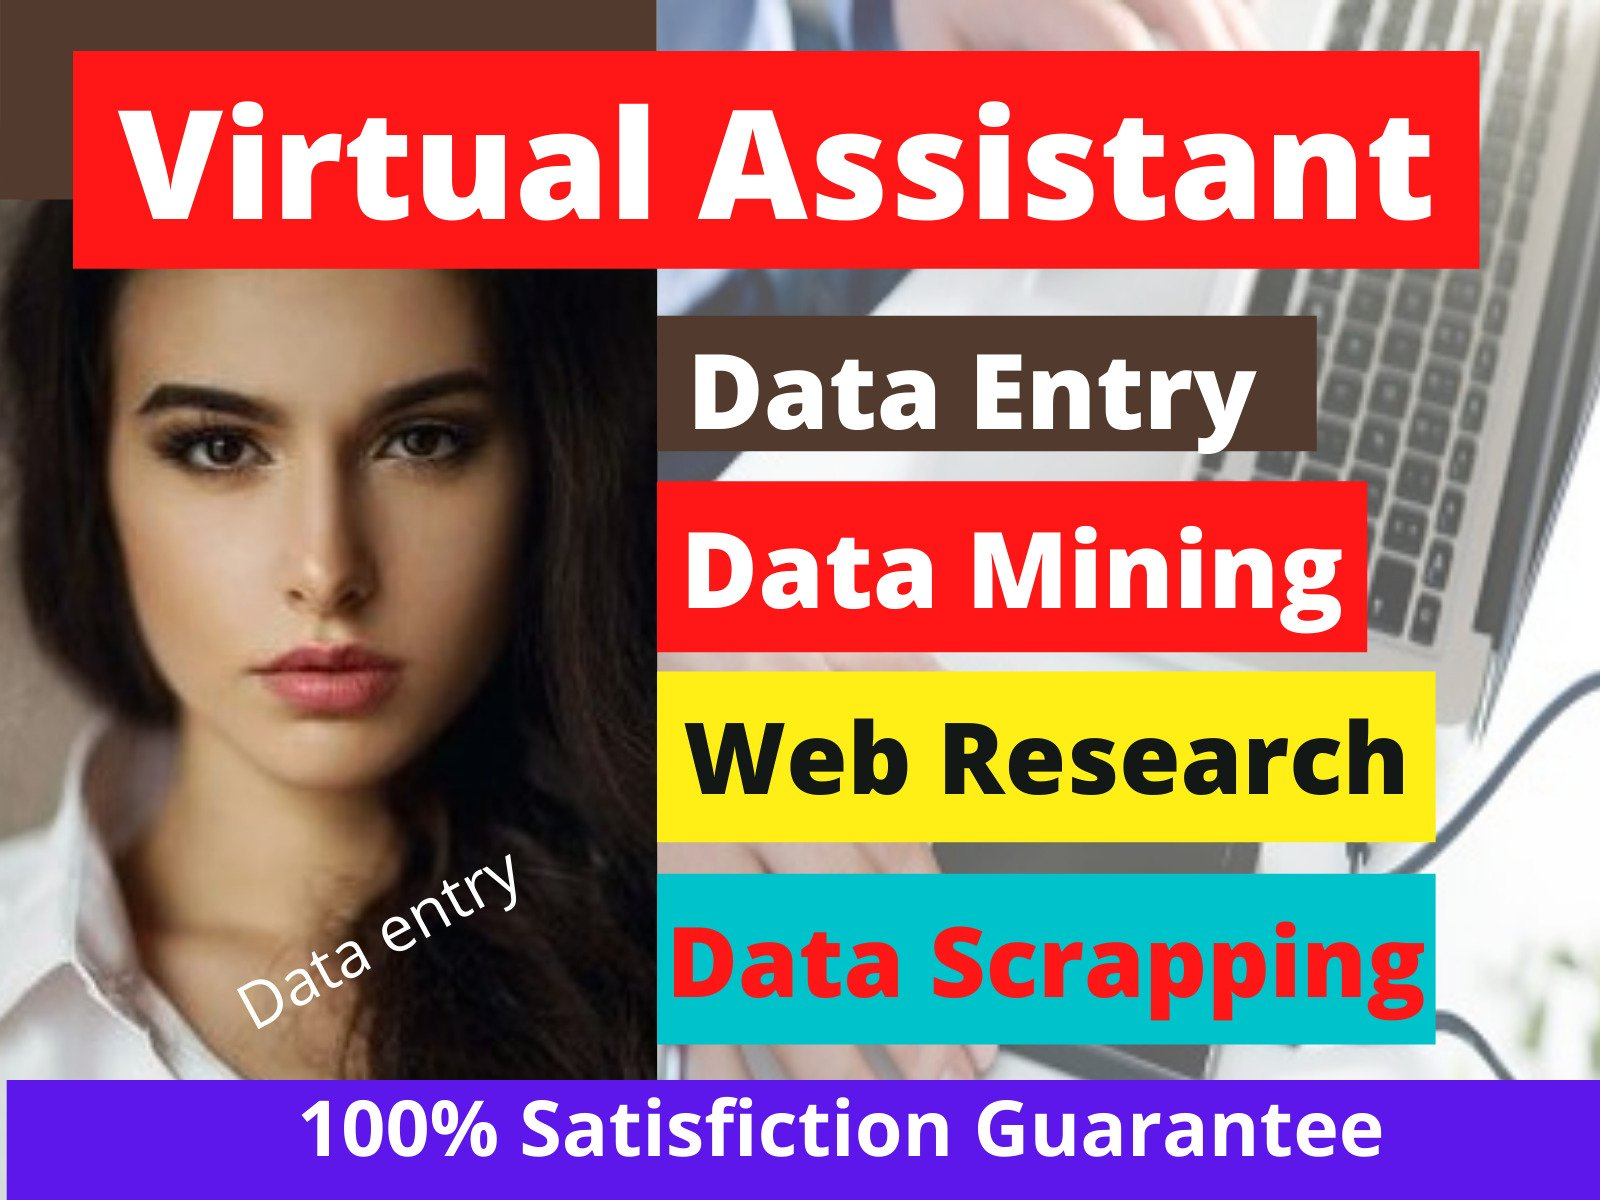 I will be your virtual assistant for web research,  data entry and excel